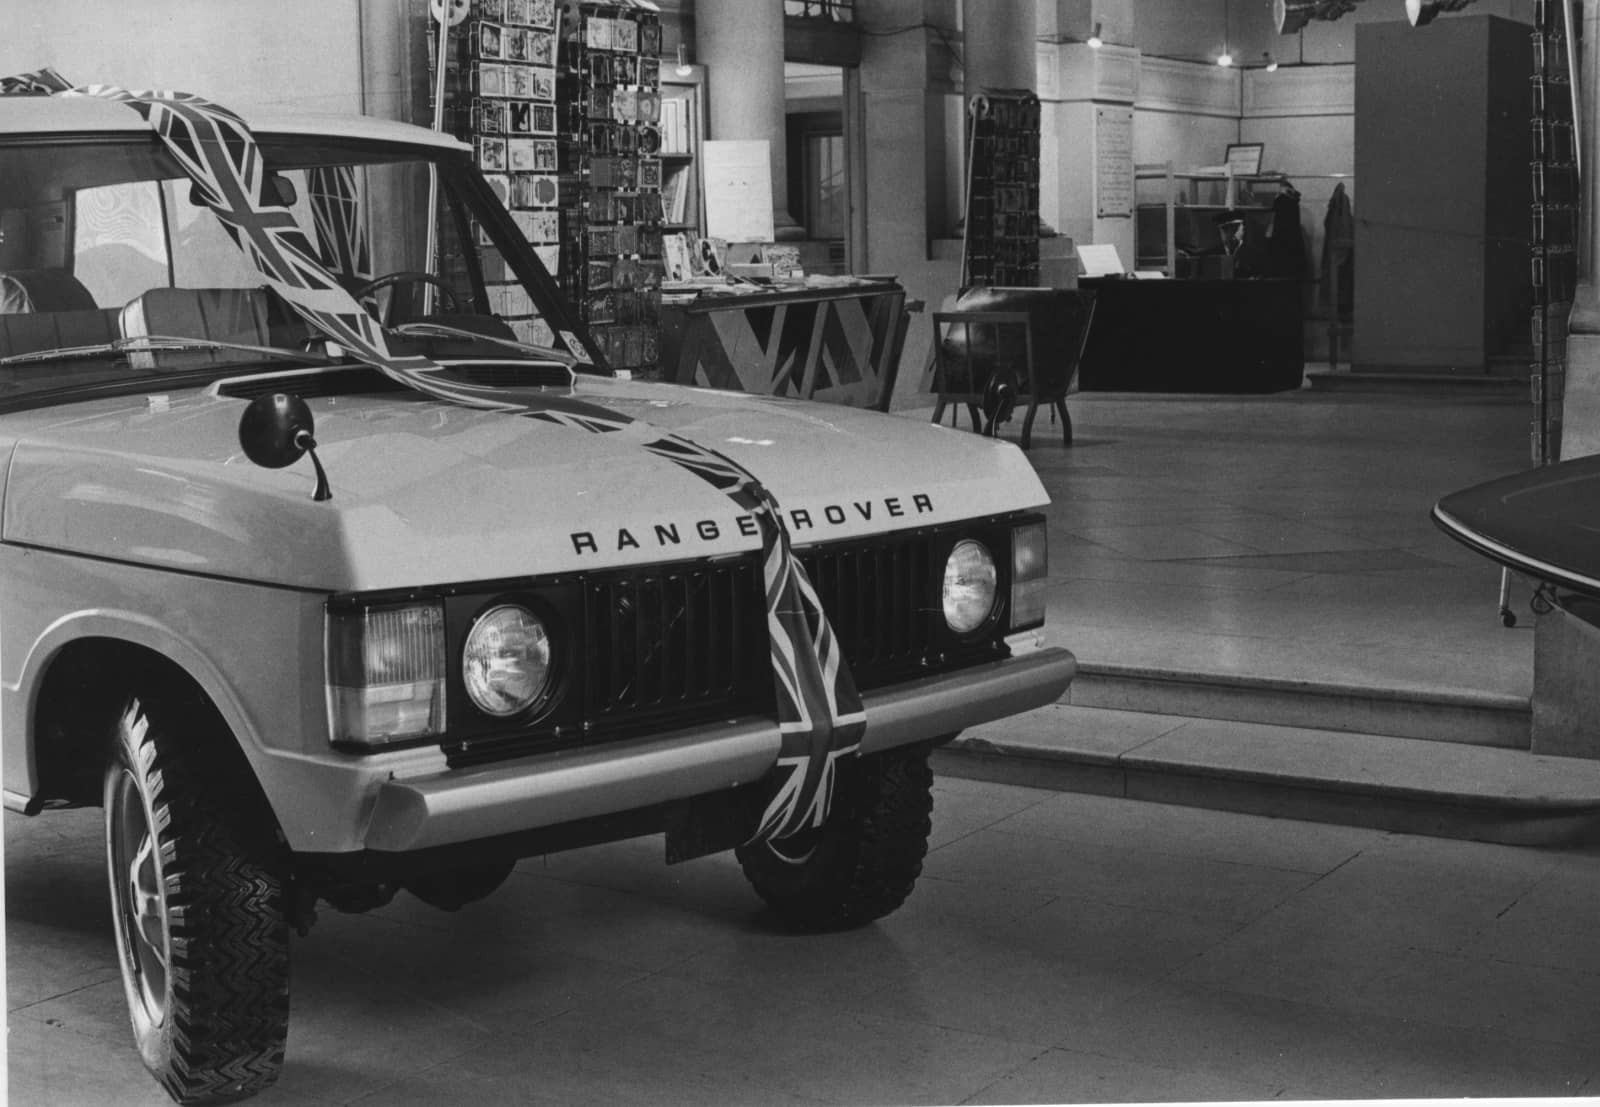 1970 Range Rover on display at Louvre_02